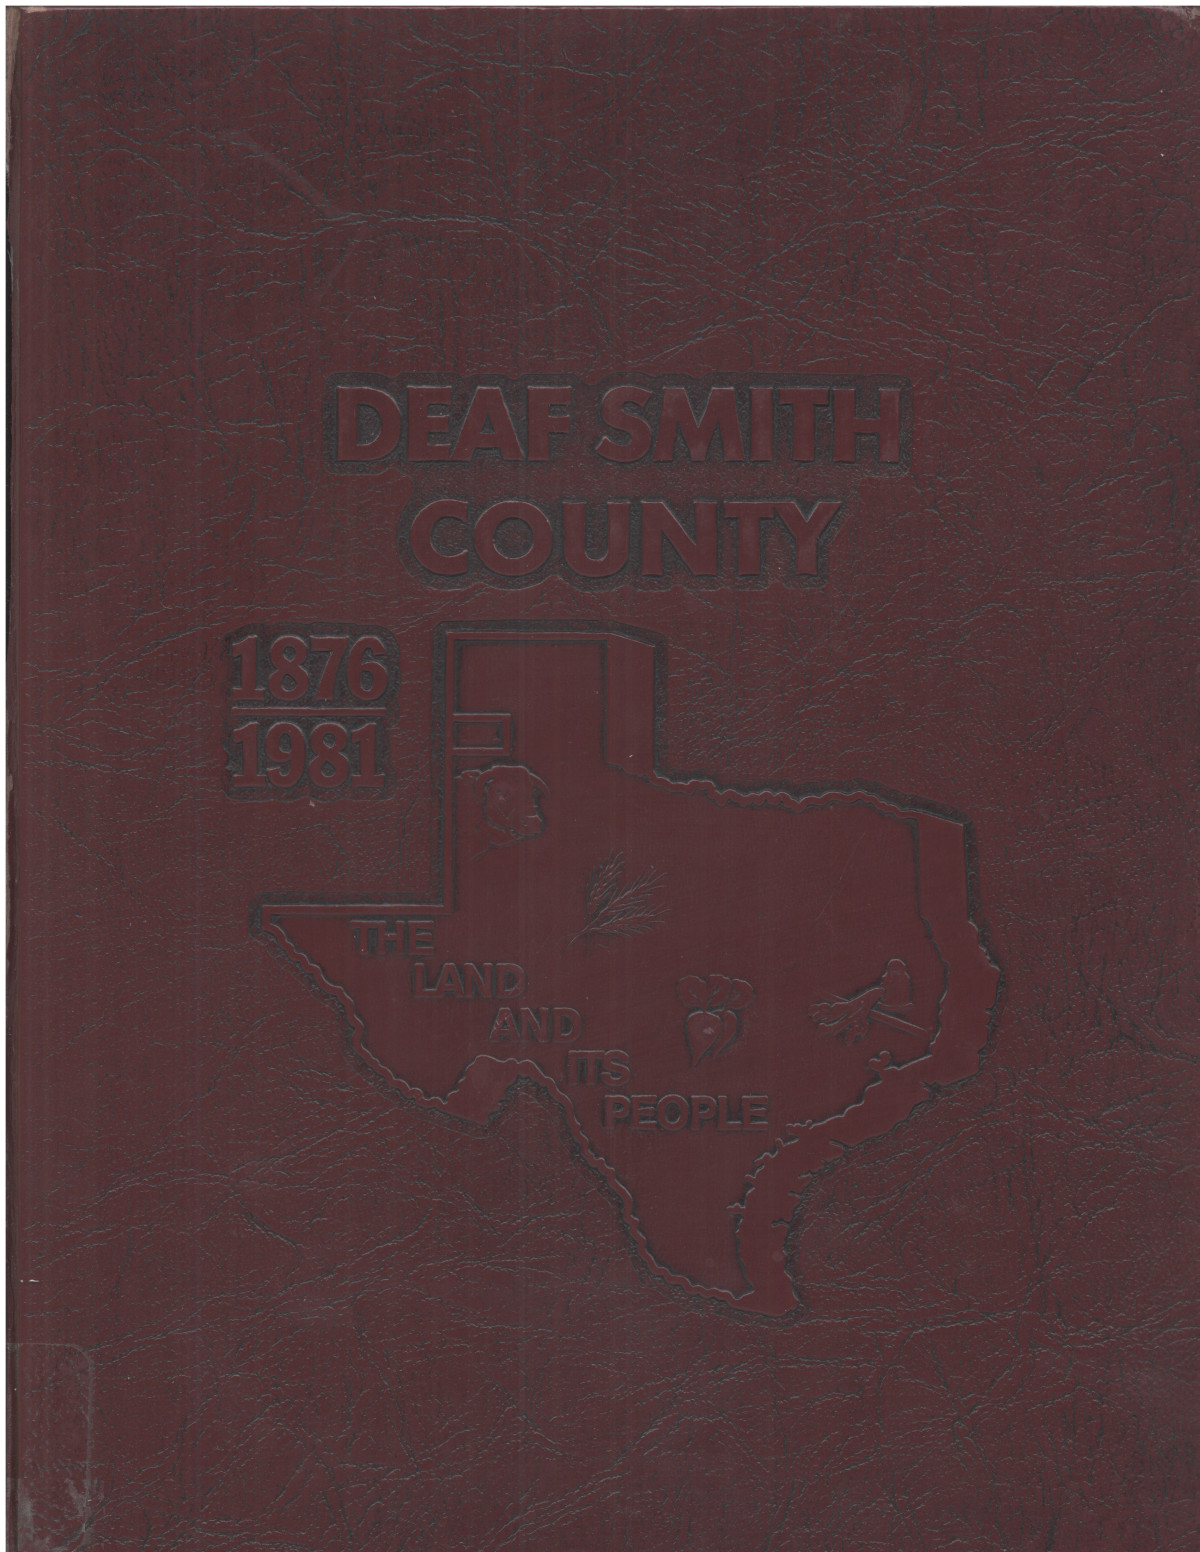 The land and its people, 1876-1981: Deaf Smith County, Texas                                                                                                      None